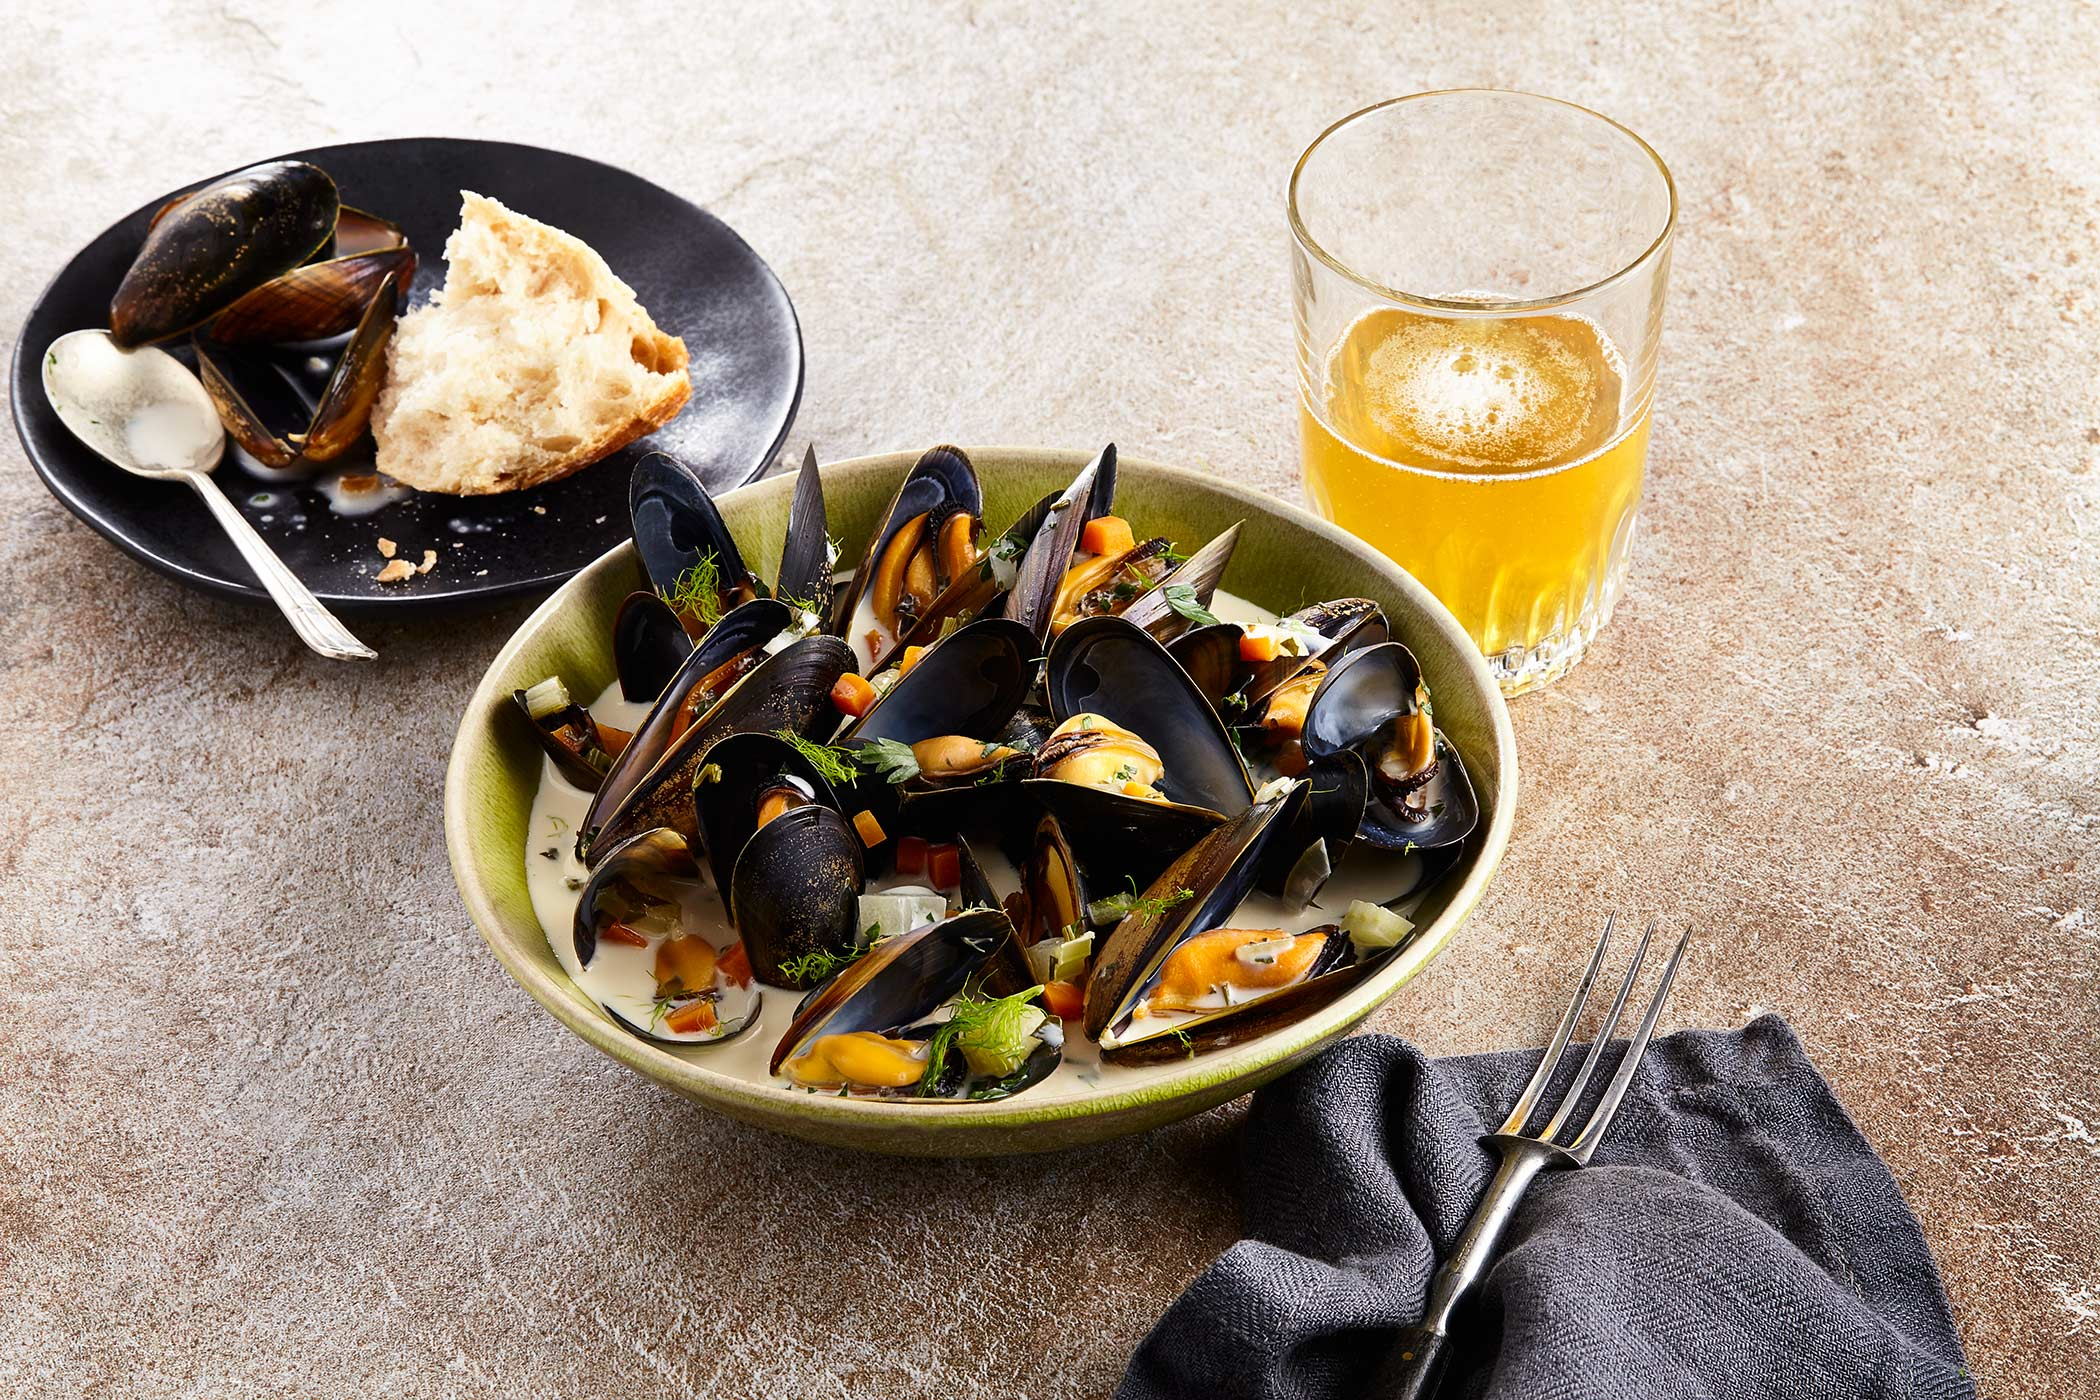 Mussels cooked in Beer, Scottish Shellfish